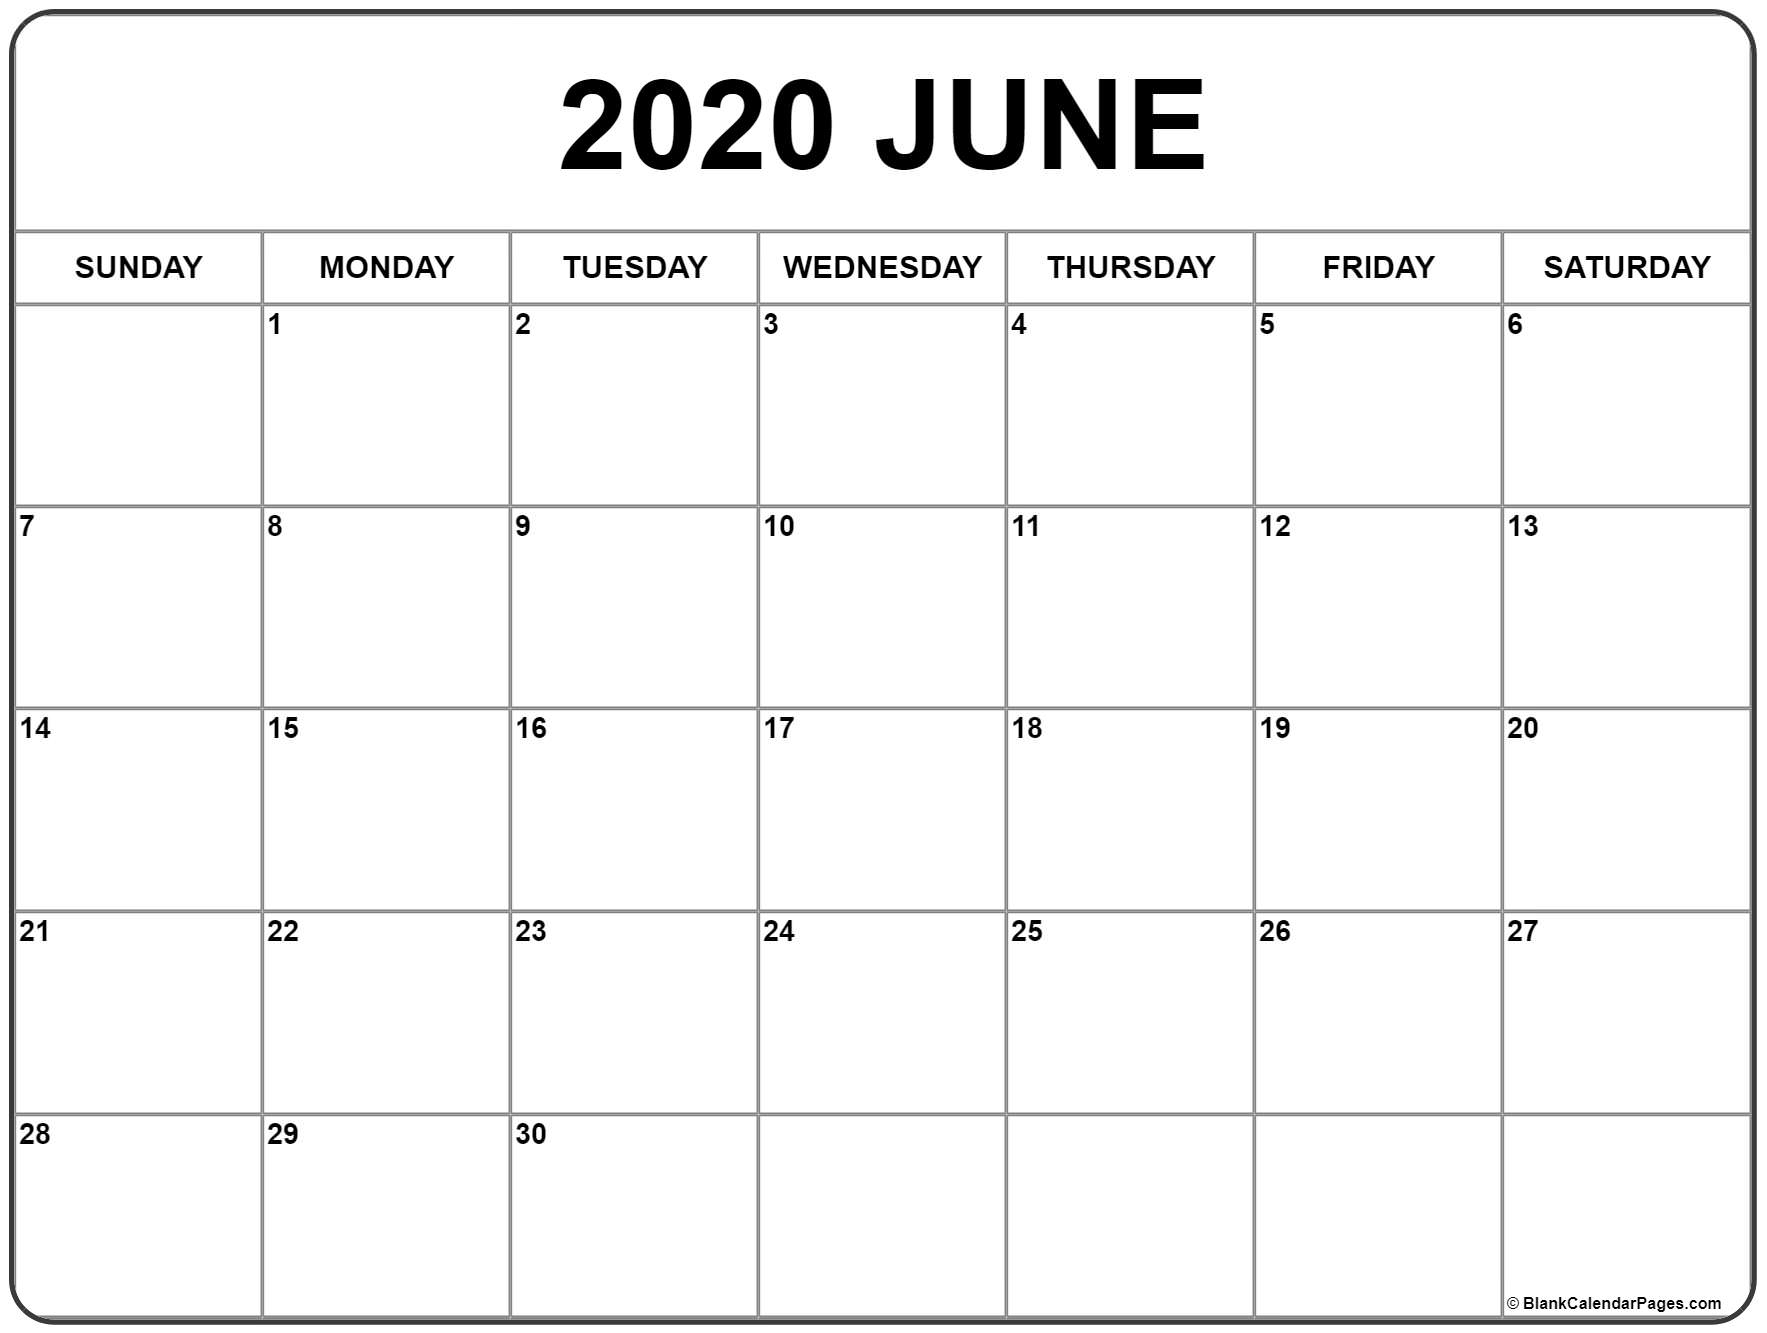 June 2020 Calendar | Free Printable Monthly Calendars within Printable Yearly Calendar July 2019 - June 2020